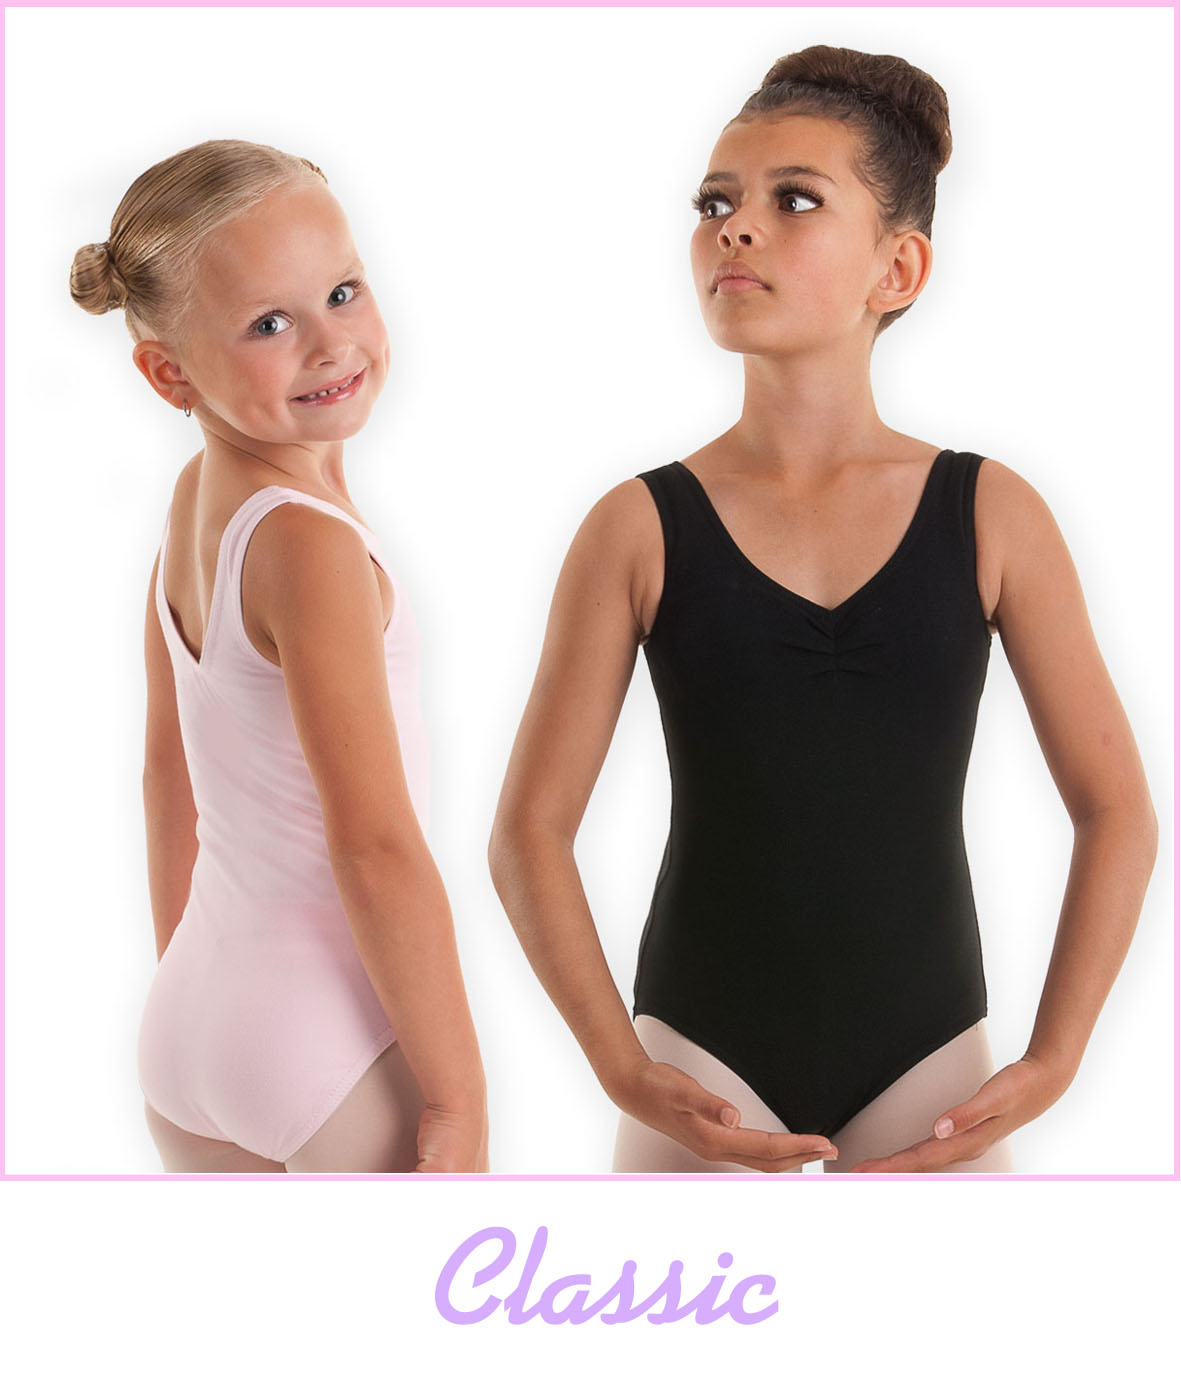 bewertungen classic balletttrikot mit raffung in schwarz oder rosa. Black Bedroom Furniture Sets. Home Design Ideas